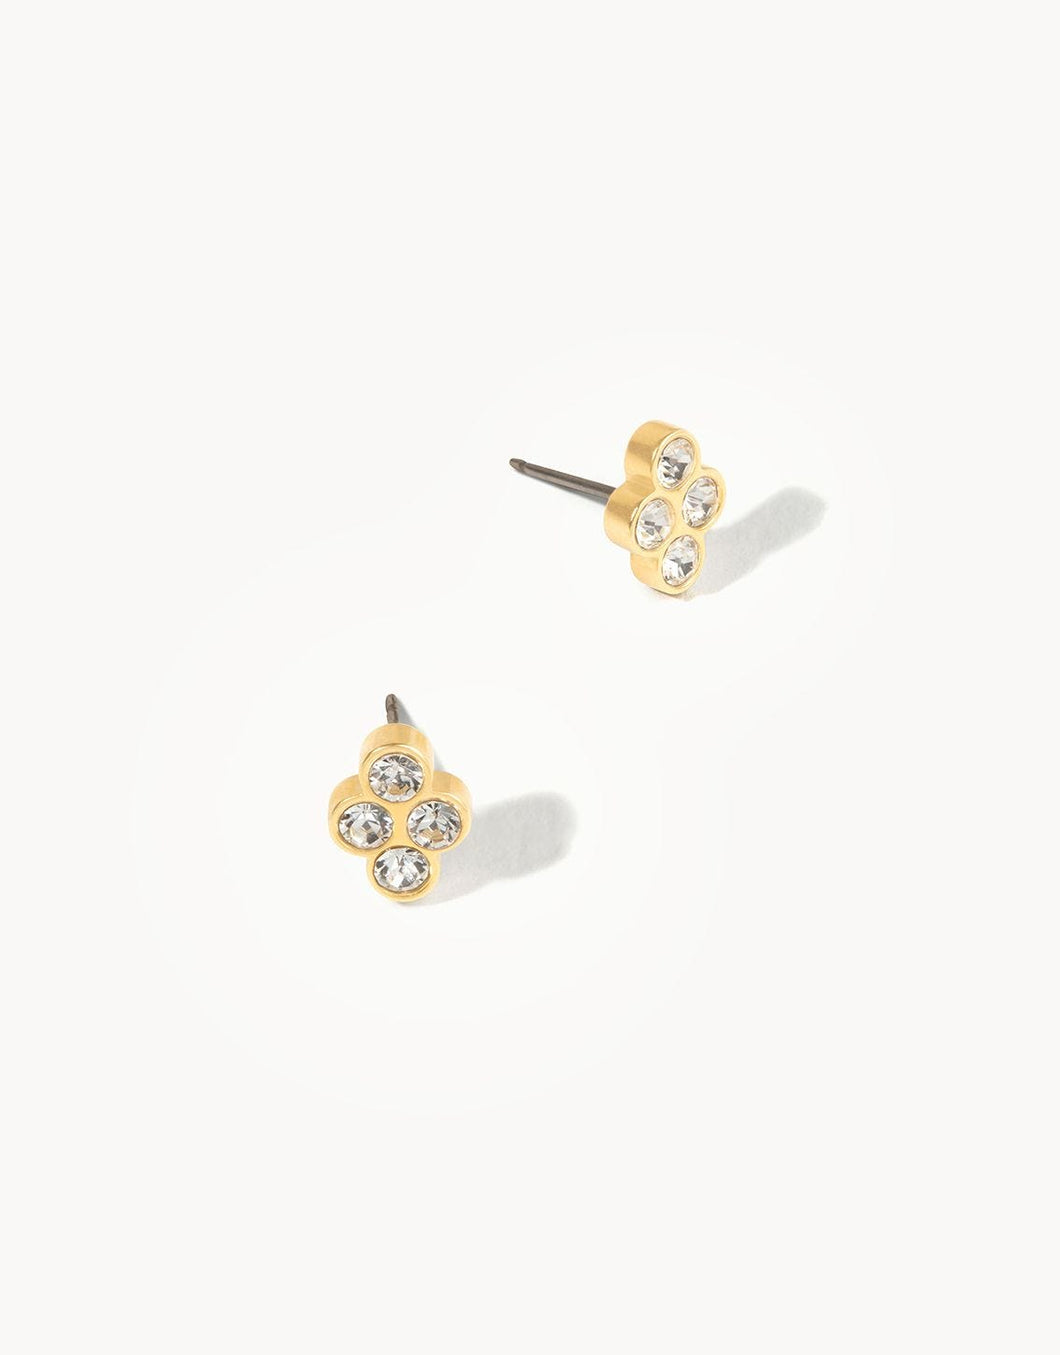 Delicate Sprite Stud Earrings